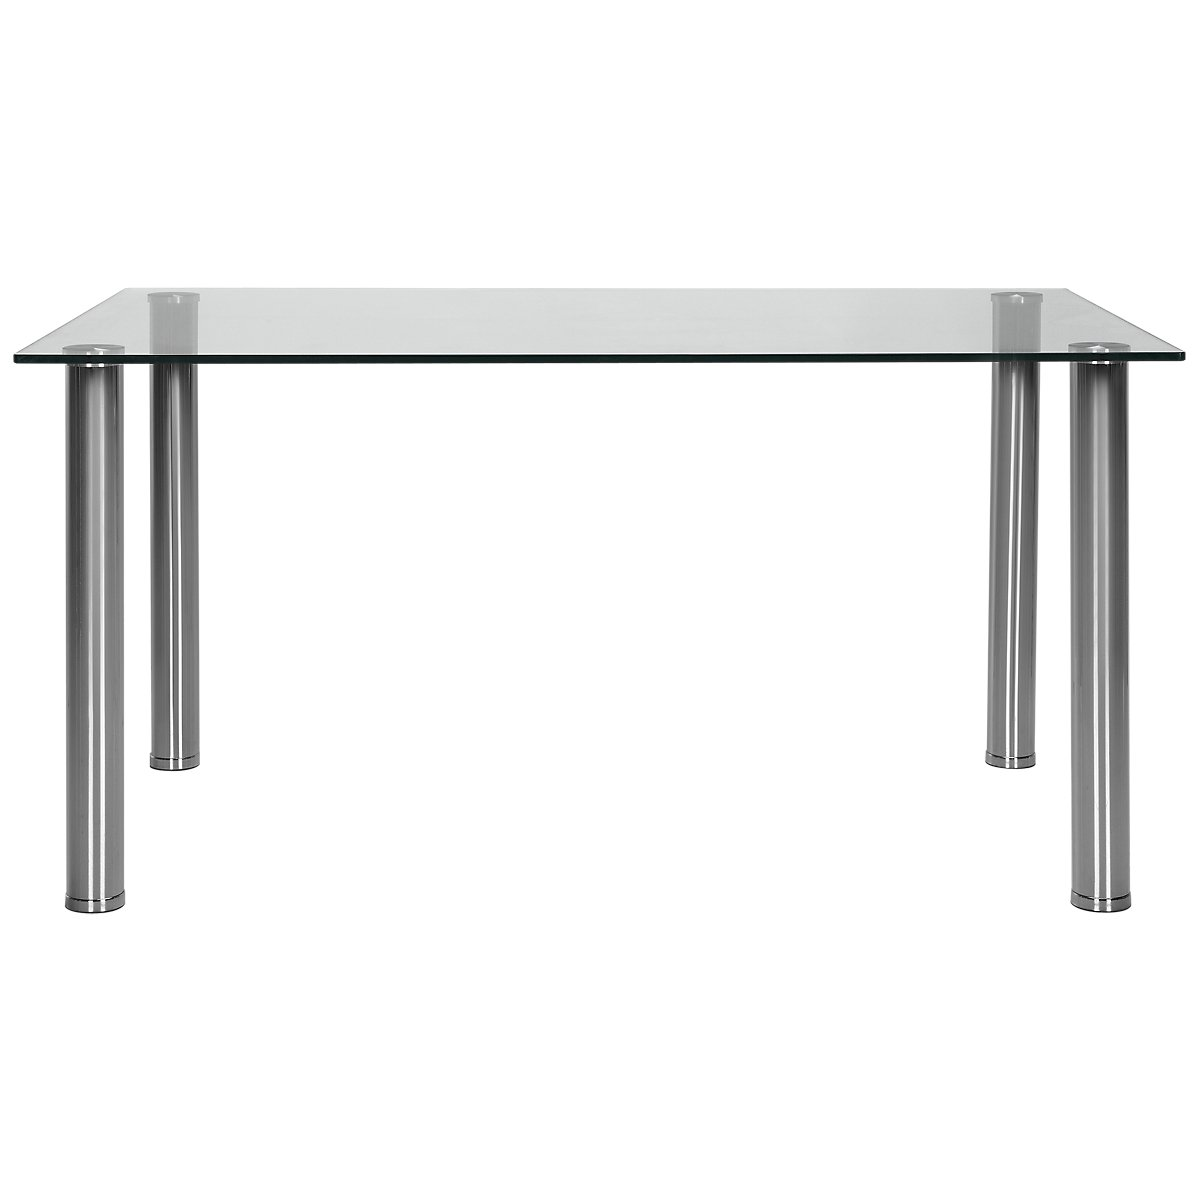 Napoli Gl Rectangular Table